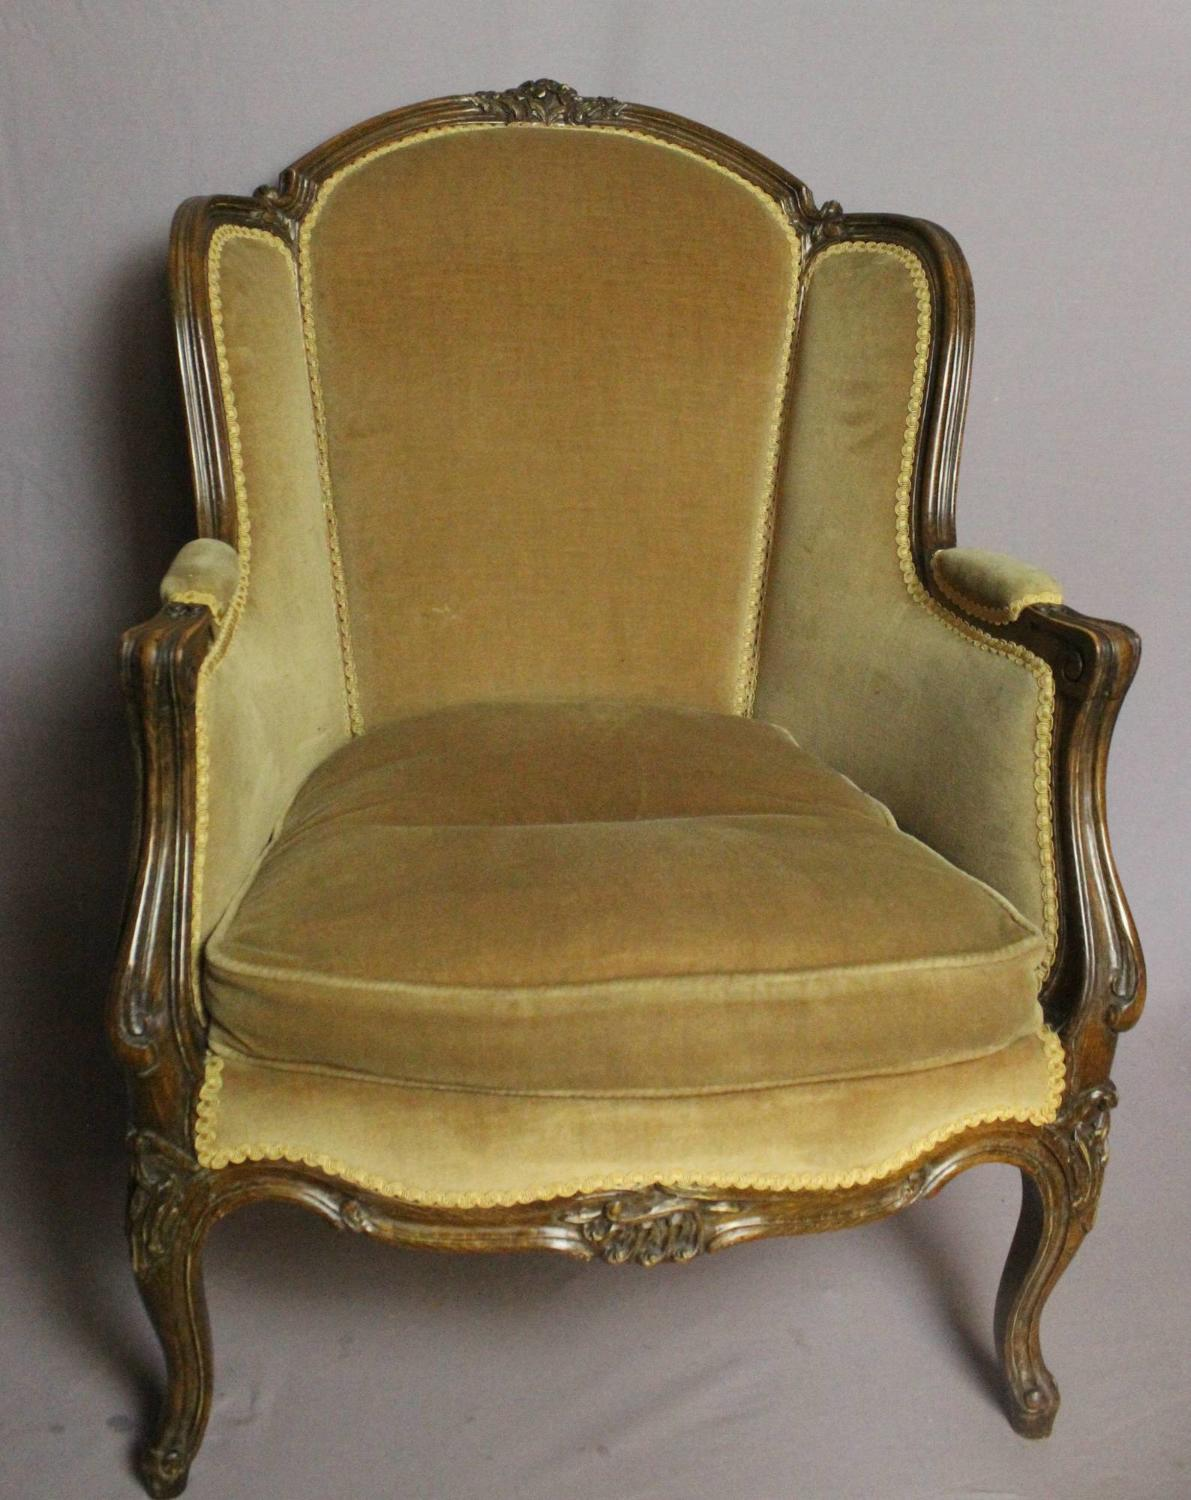 French Louis XVI Style Fauteuil / Armchair